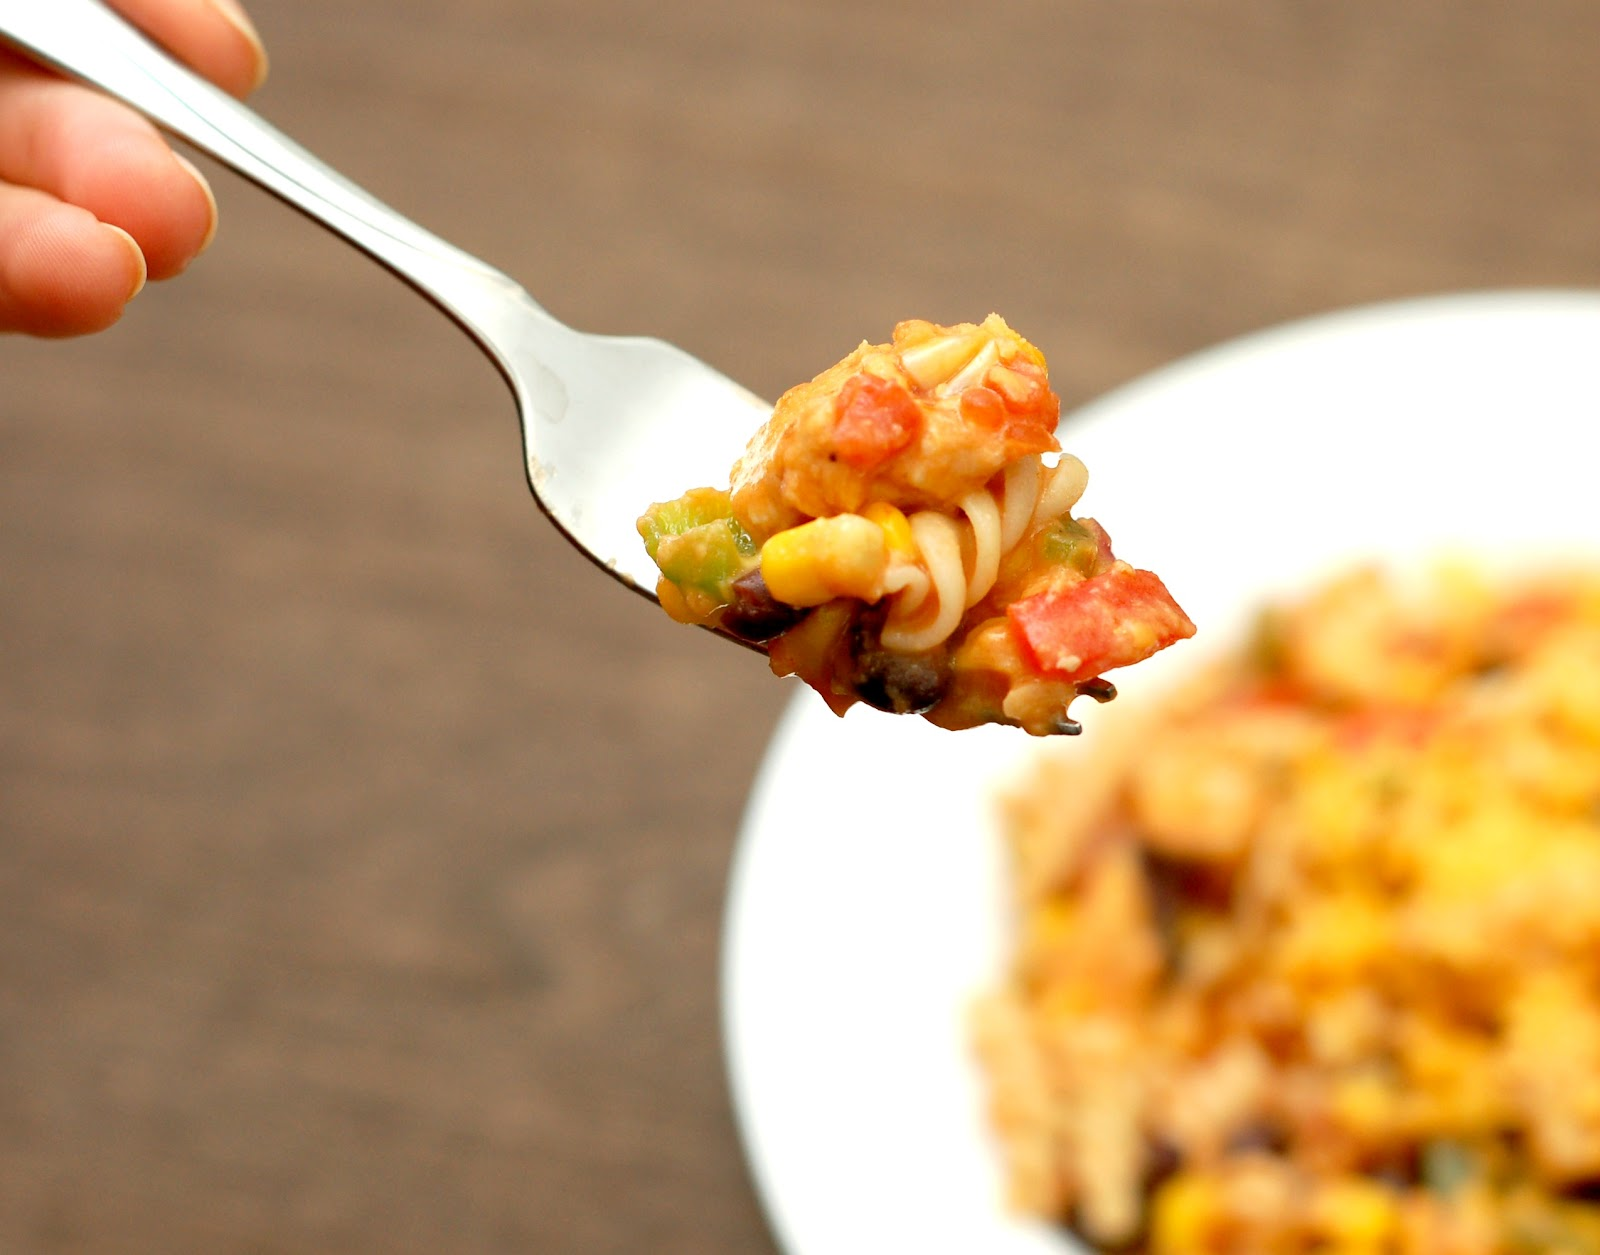 Enter this pasta skillet. No melting involved. Throw in your favorite ...